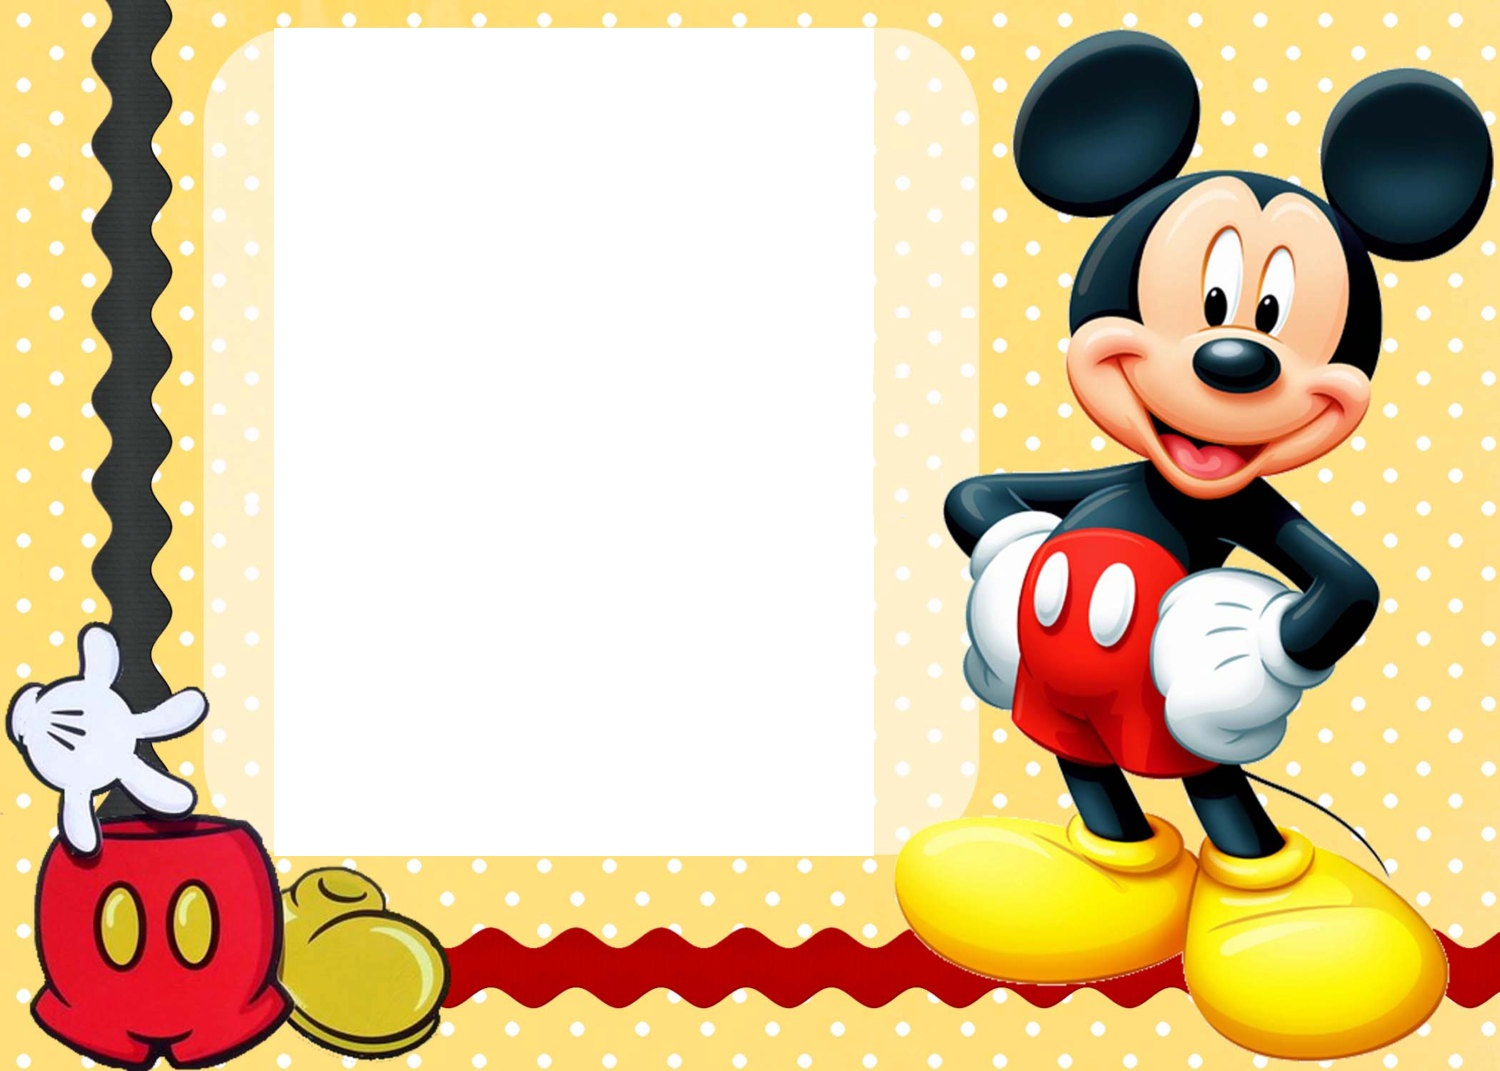 Mickey Mouse Images Download   Widescreen HD Wallpapers 1500x1071